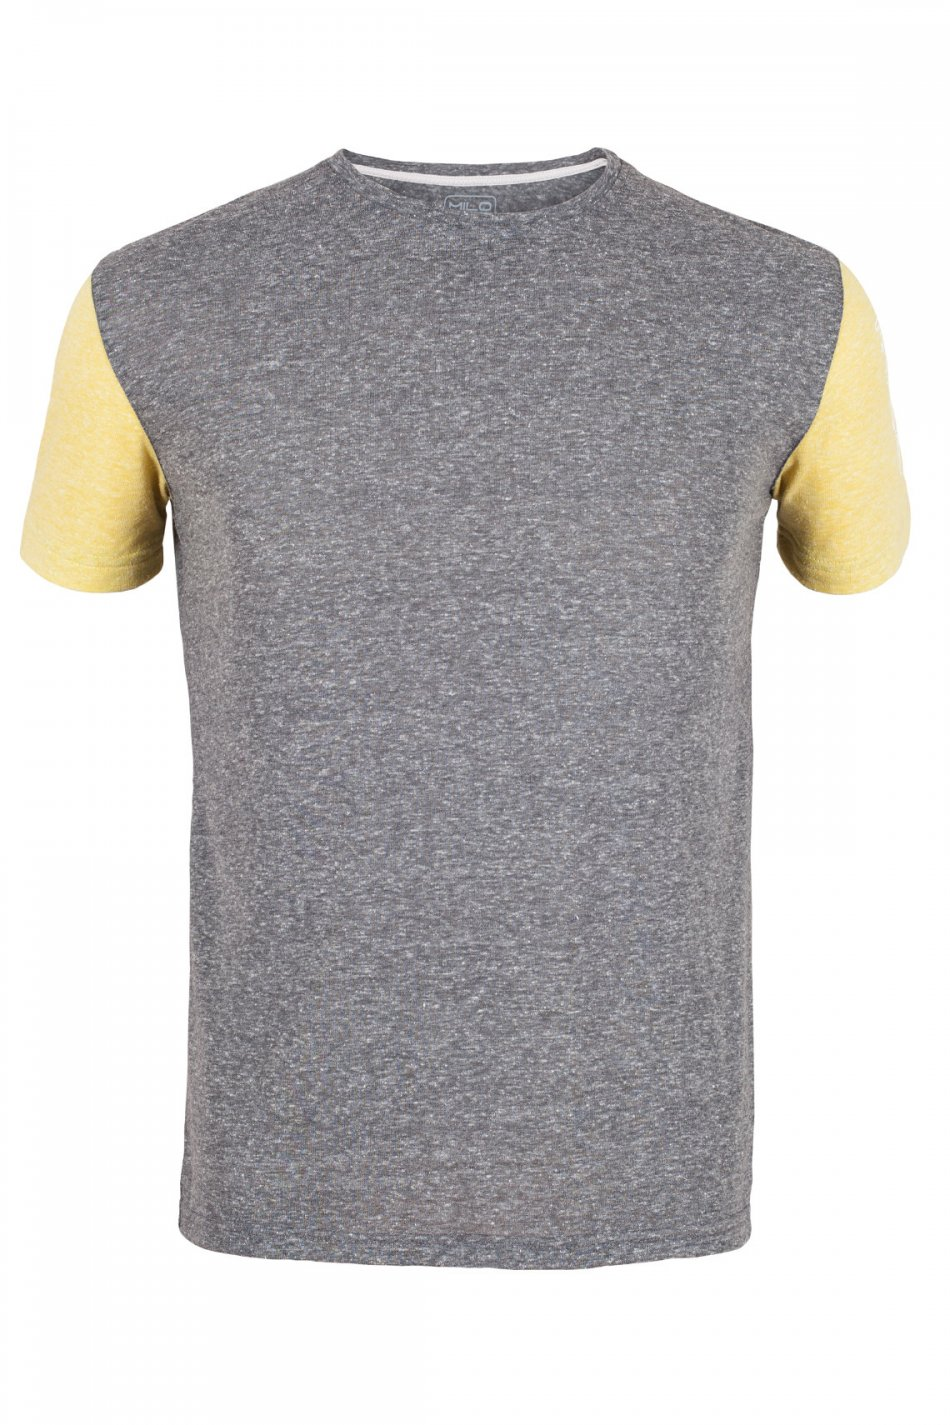 Milo Lashoo Periscope Grey yellow